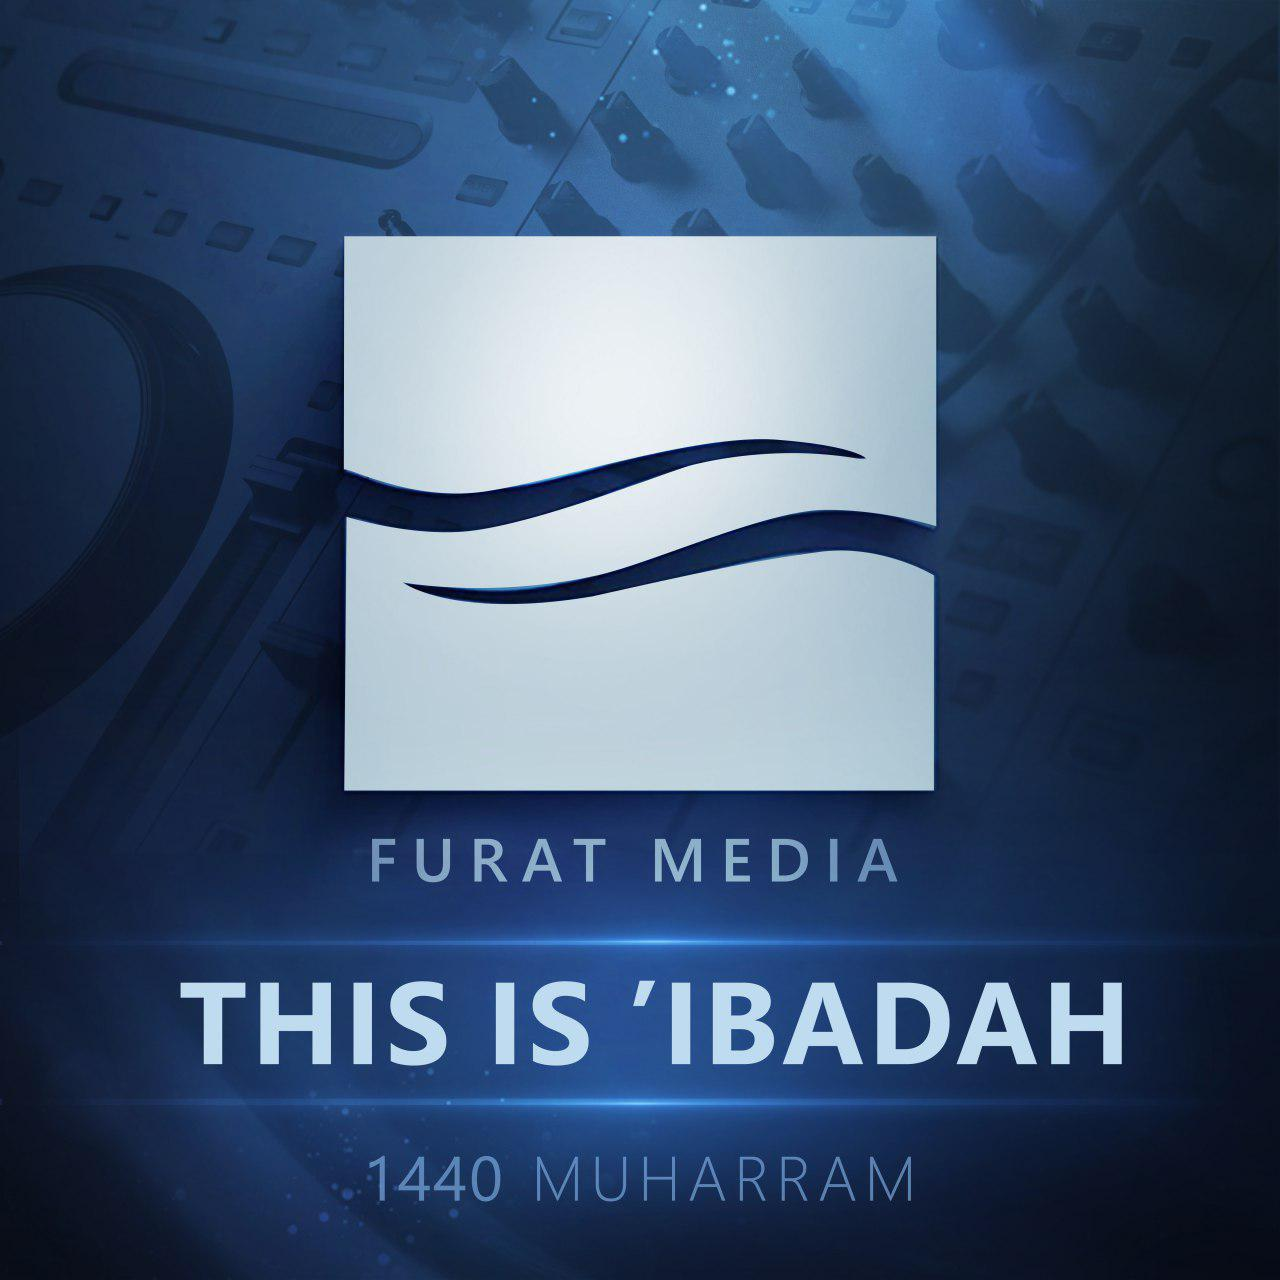 English Nasheed By ISIS-Affiliated Furat Media Presents ‎Jihad As Form Of Worship, Calls On People To Join Jihad, ‎Attain Martyrdom  ‎